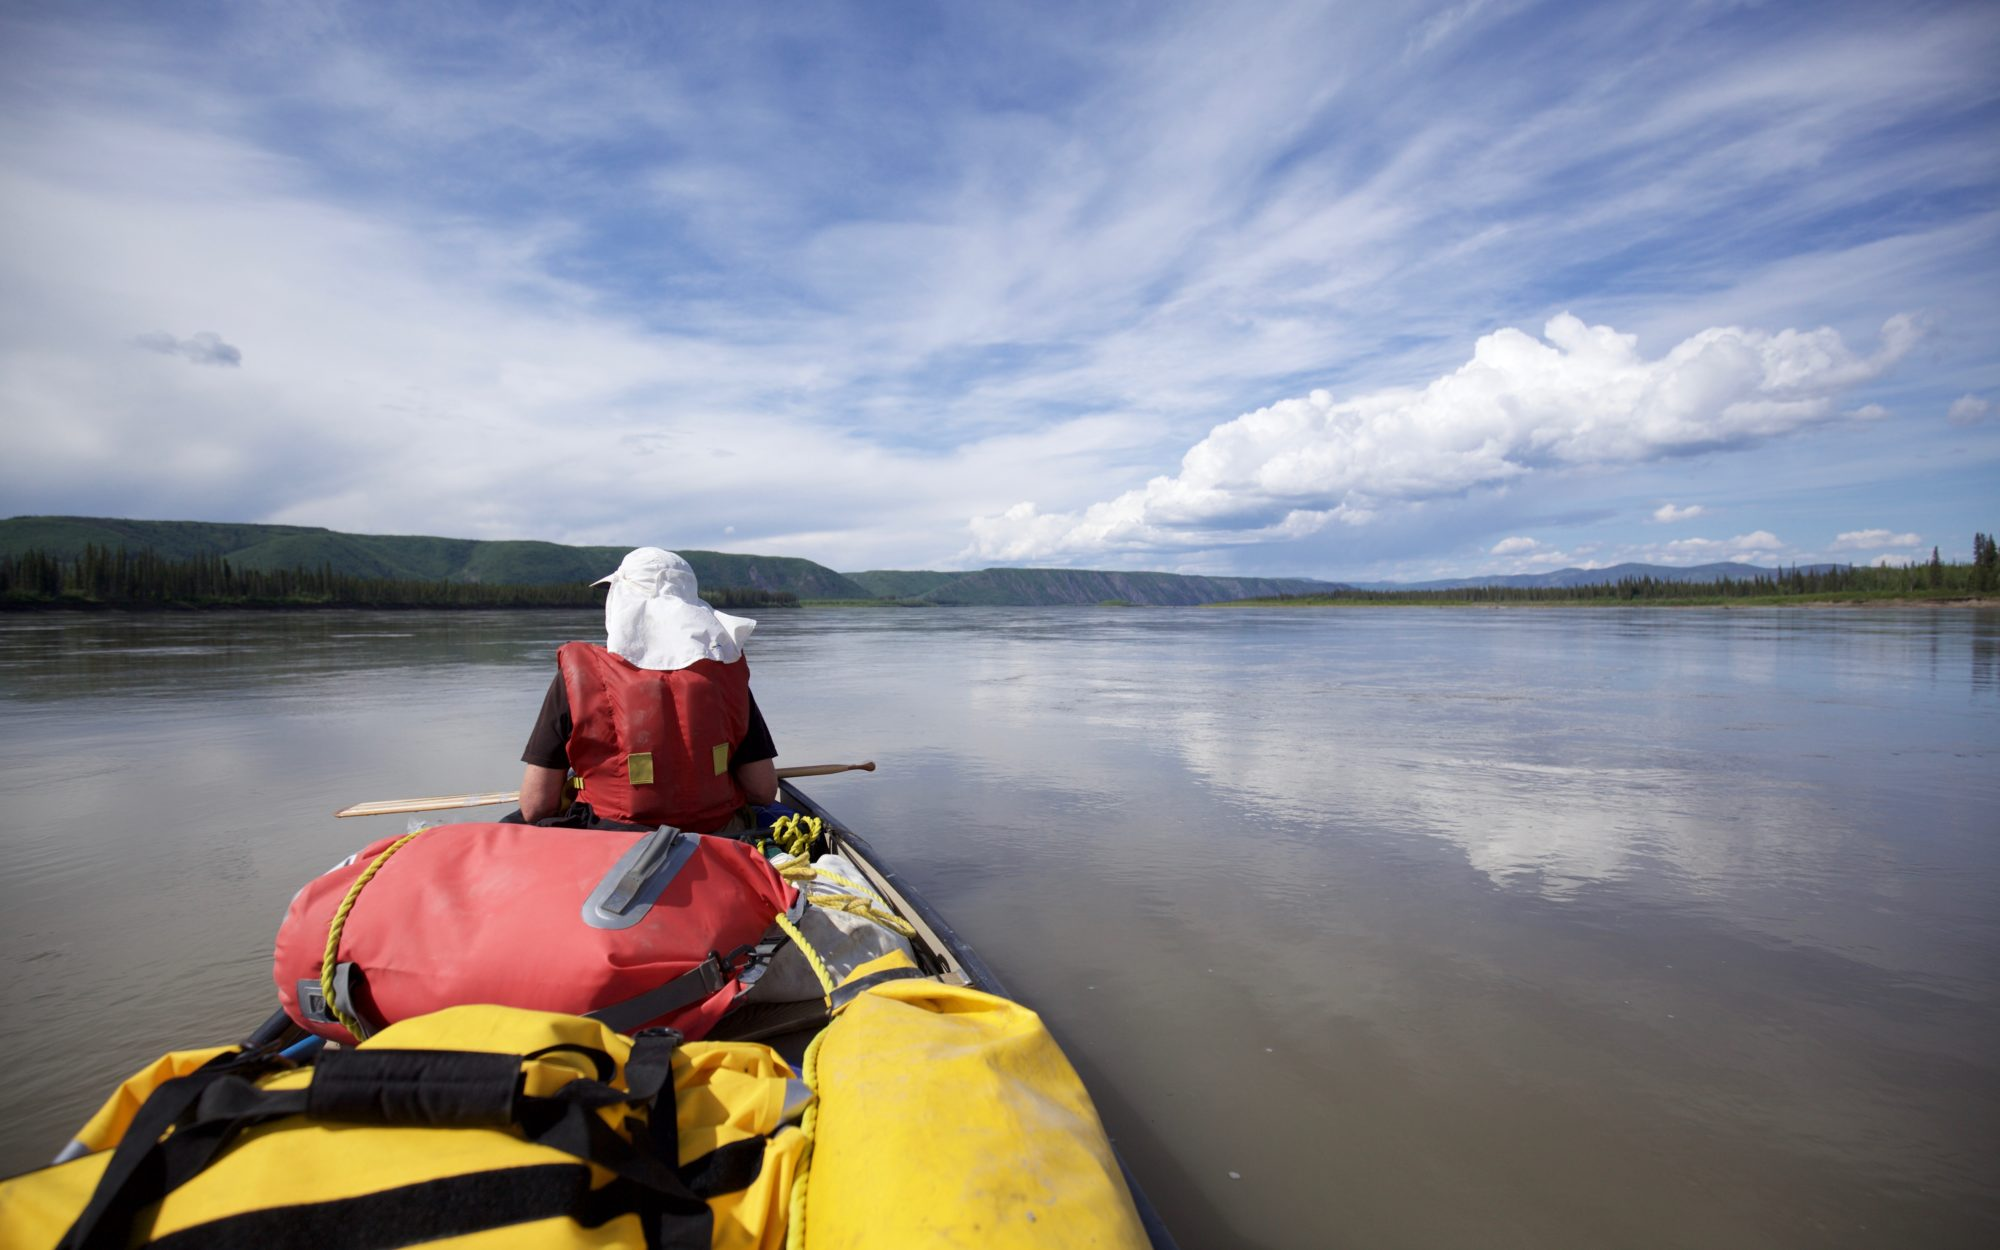 Adam Weymouth canoeing along the Yukon River